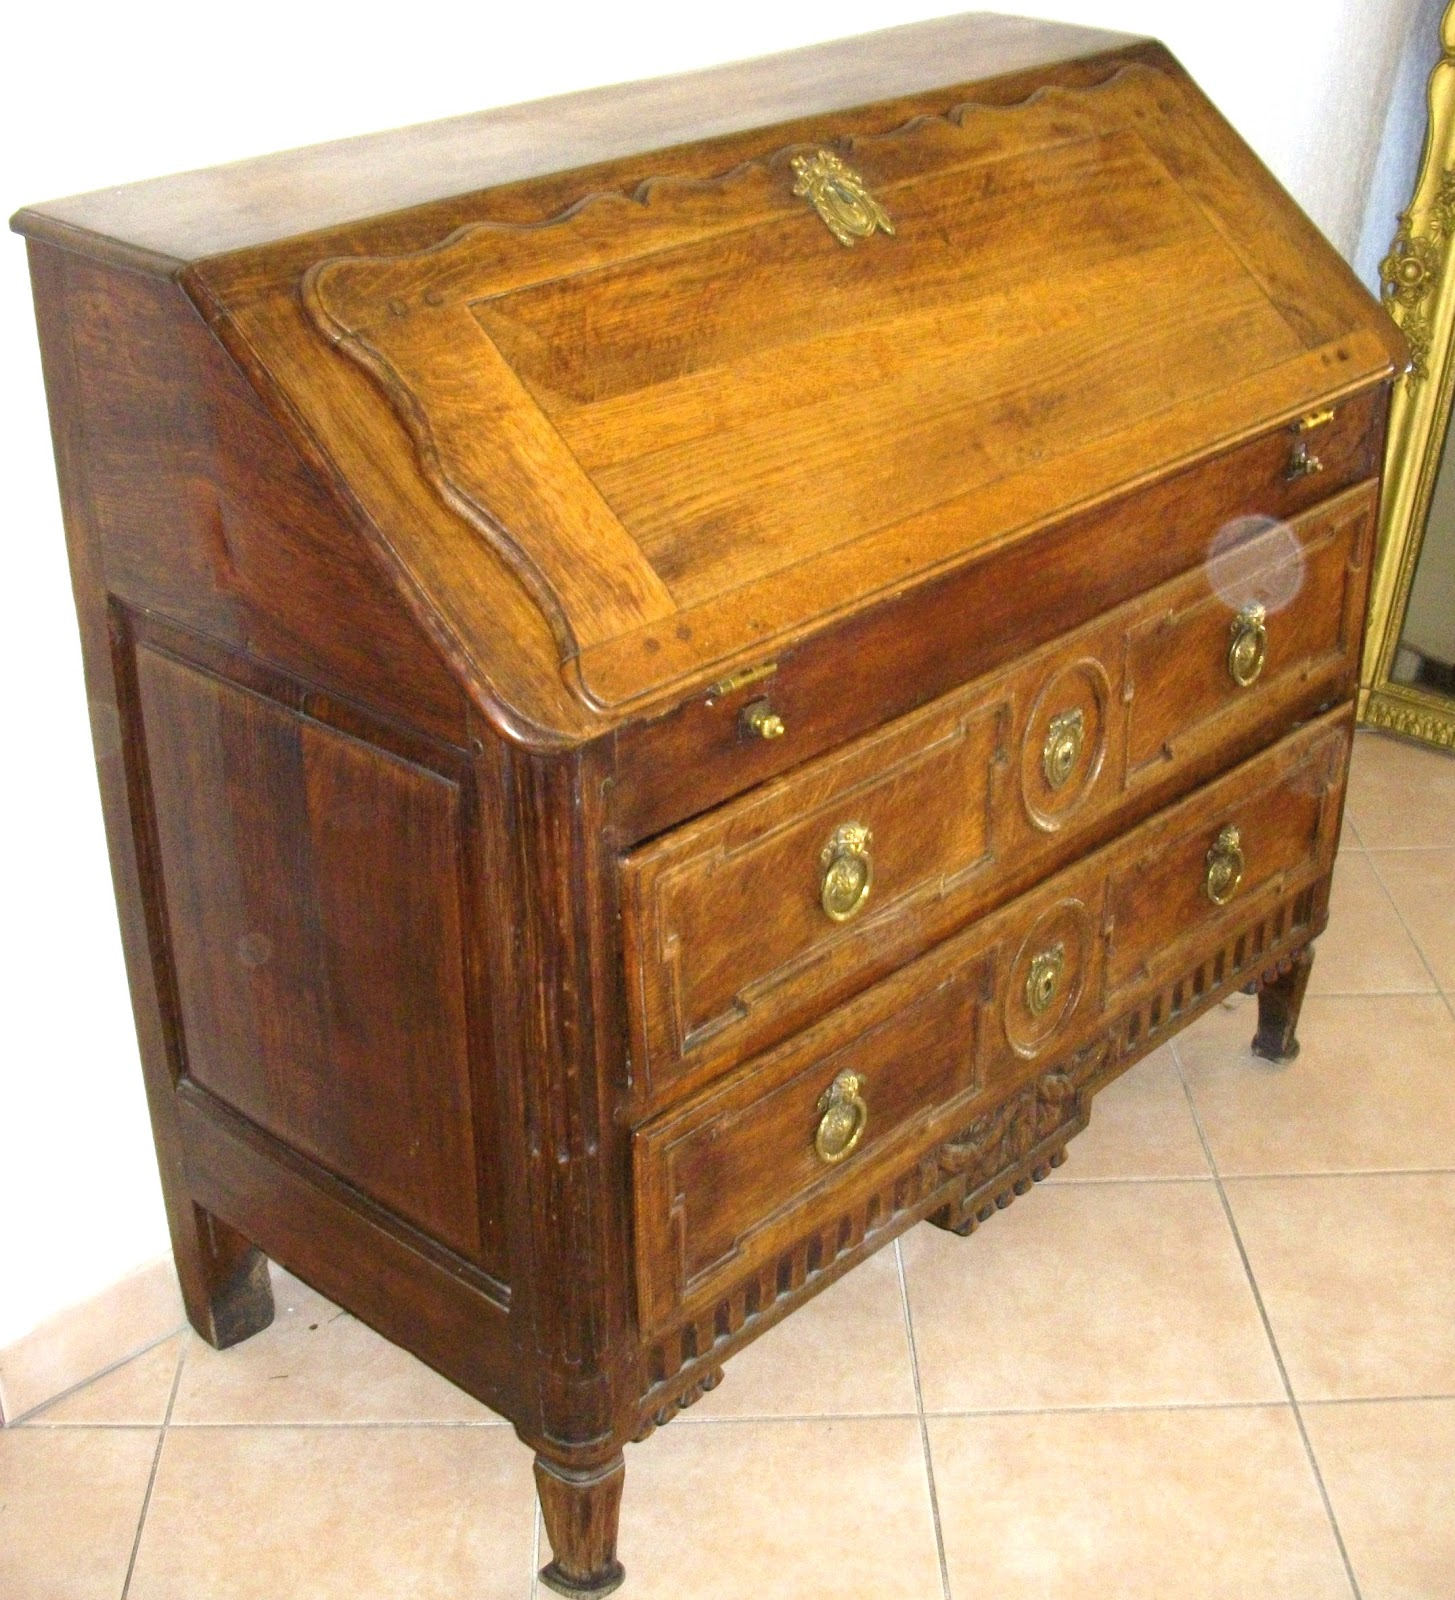 meuble ancien bureau pente secr taire dos d 39 ane a secret louis xvi i. Black Bedroom Furniture Sets. Home Design Ideas